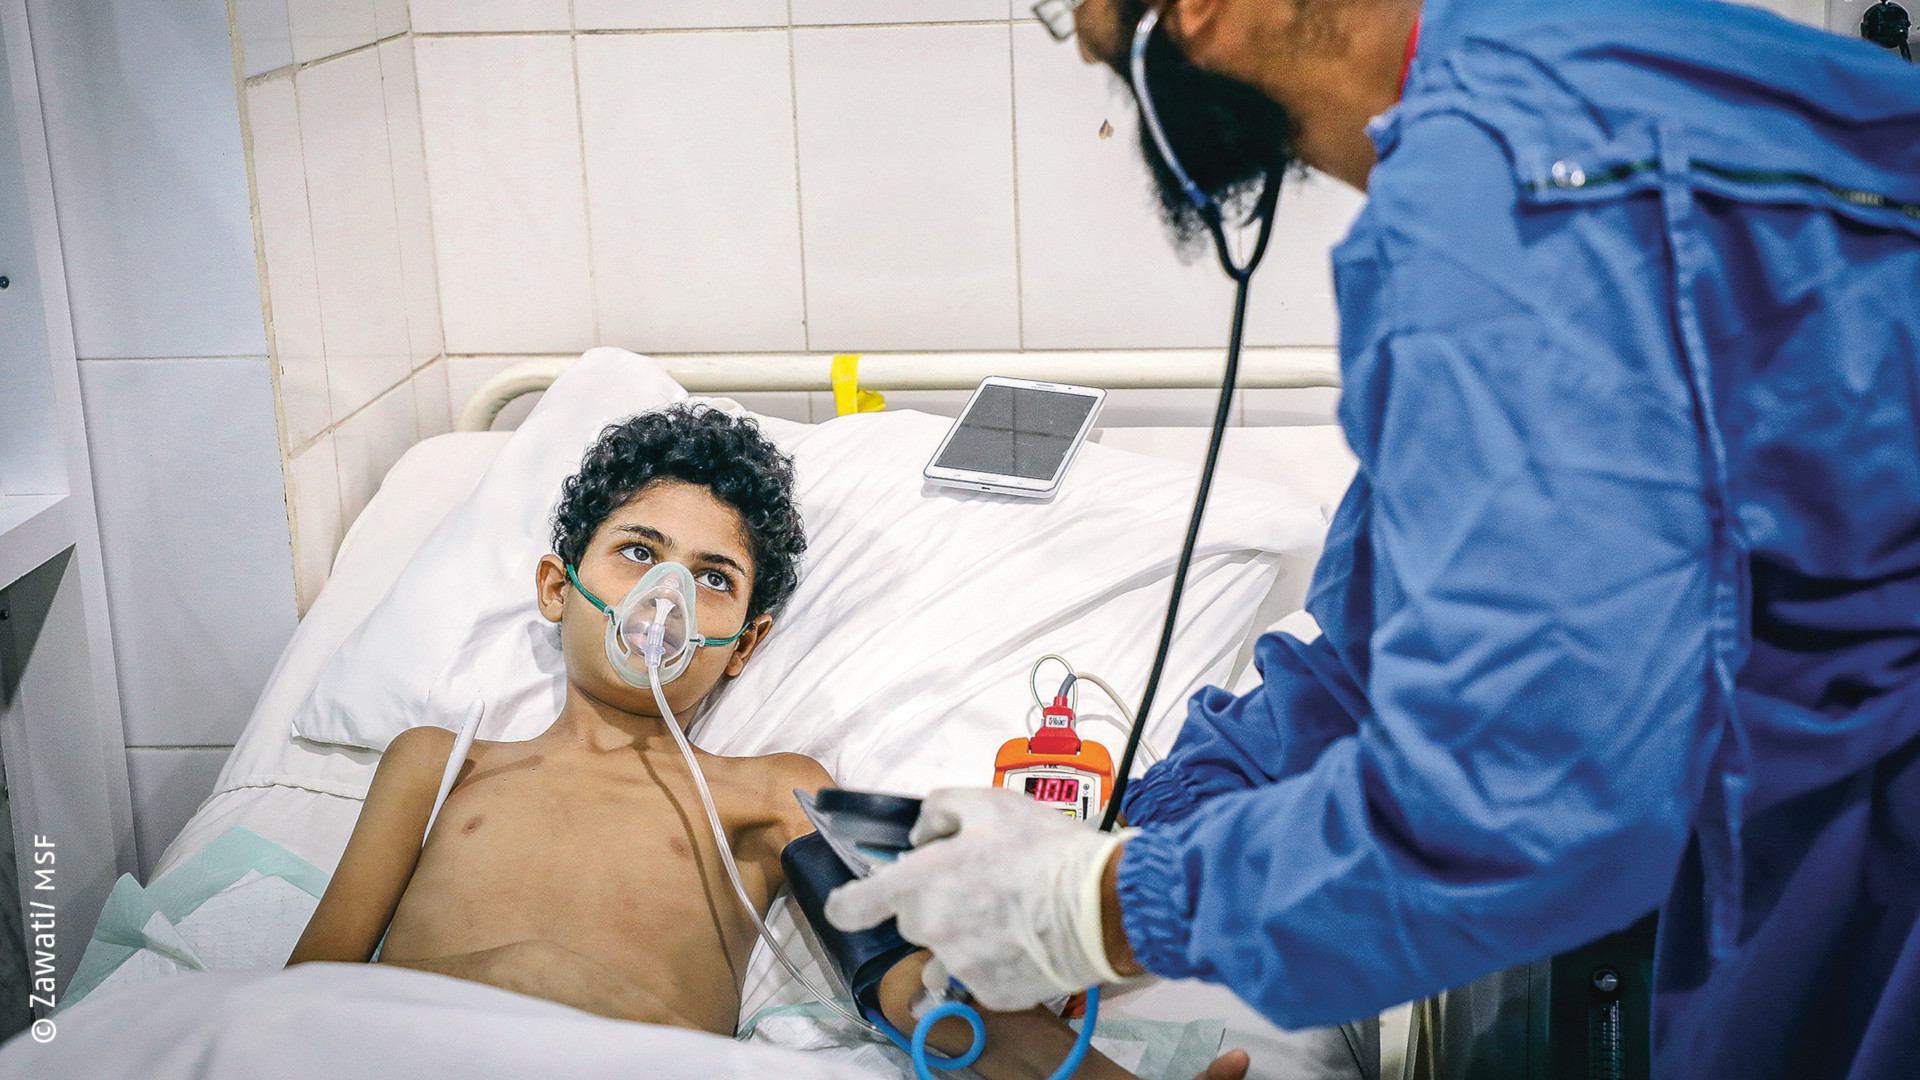 Yemen: More than 90,000 war wounded provided for